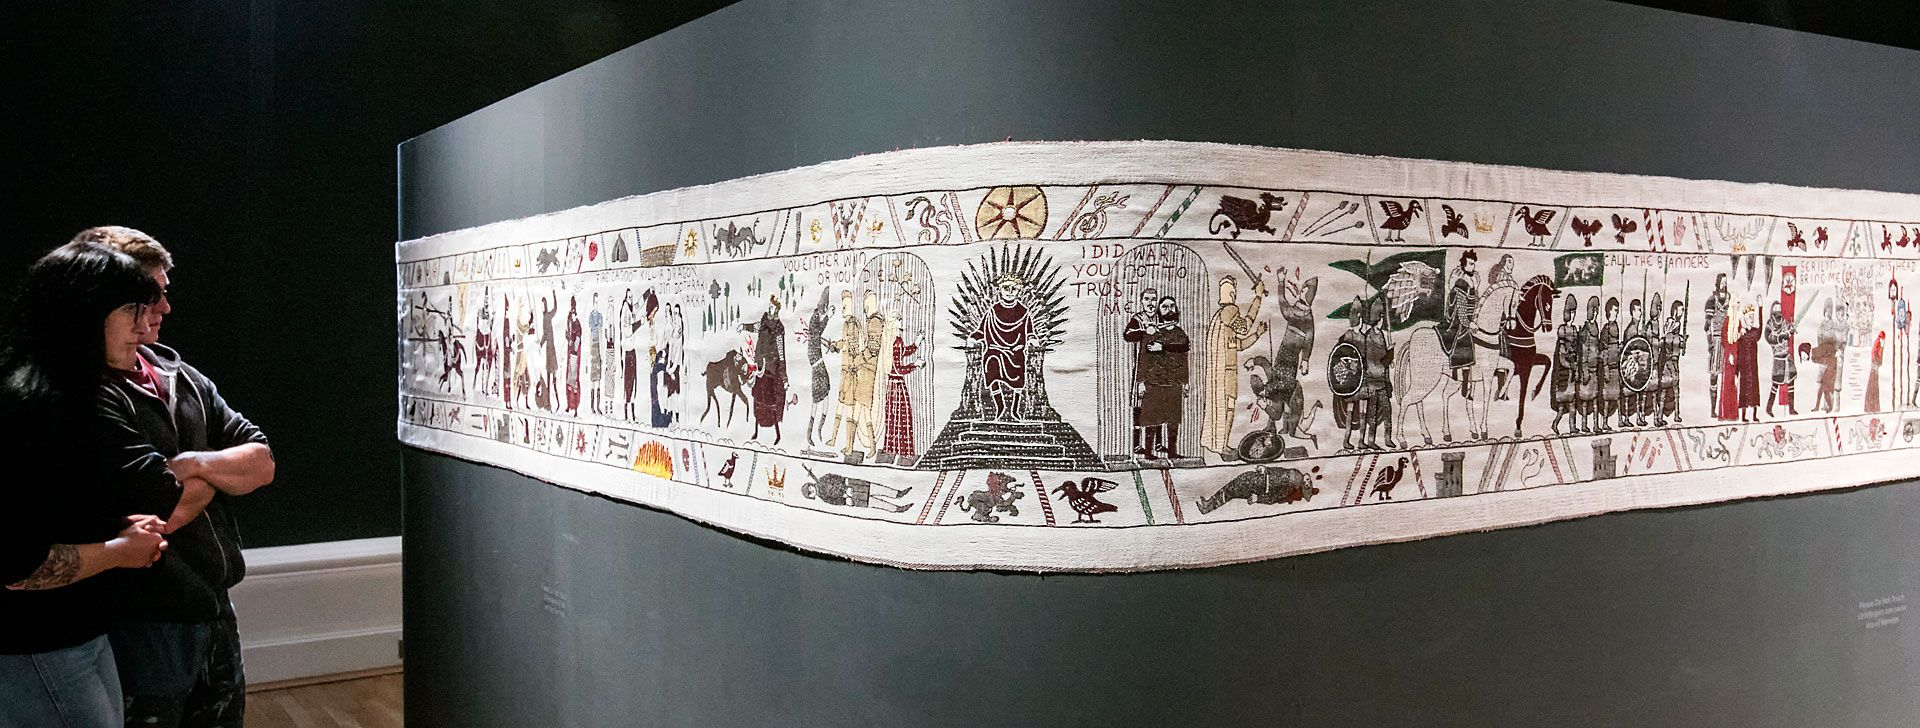 A section of the Game of Thrones tapestry at the Ulster Museum in Belfast